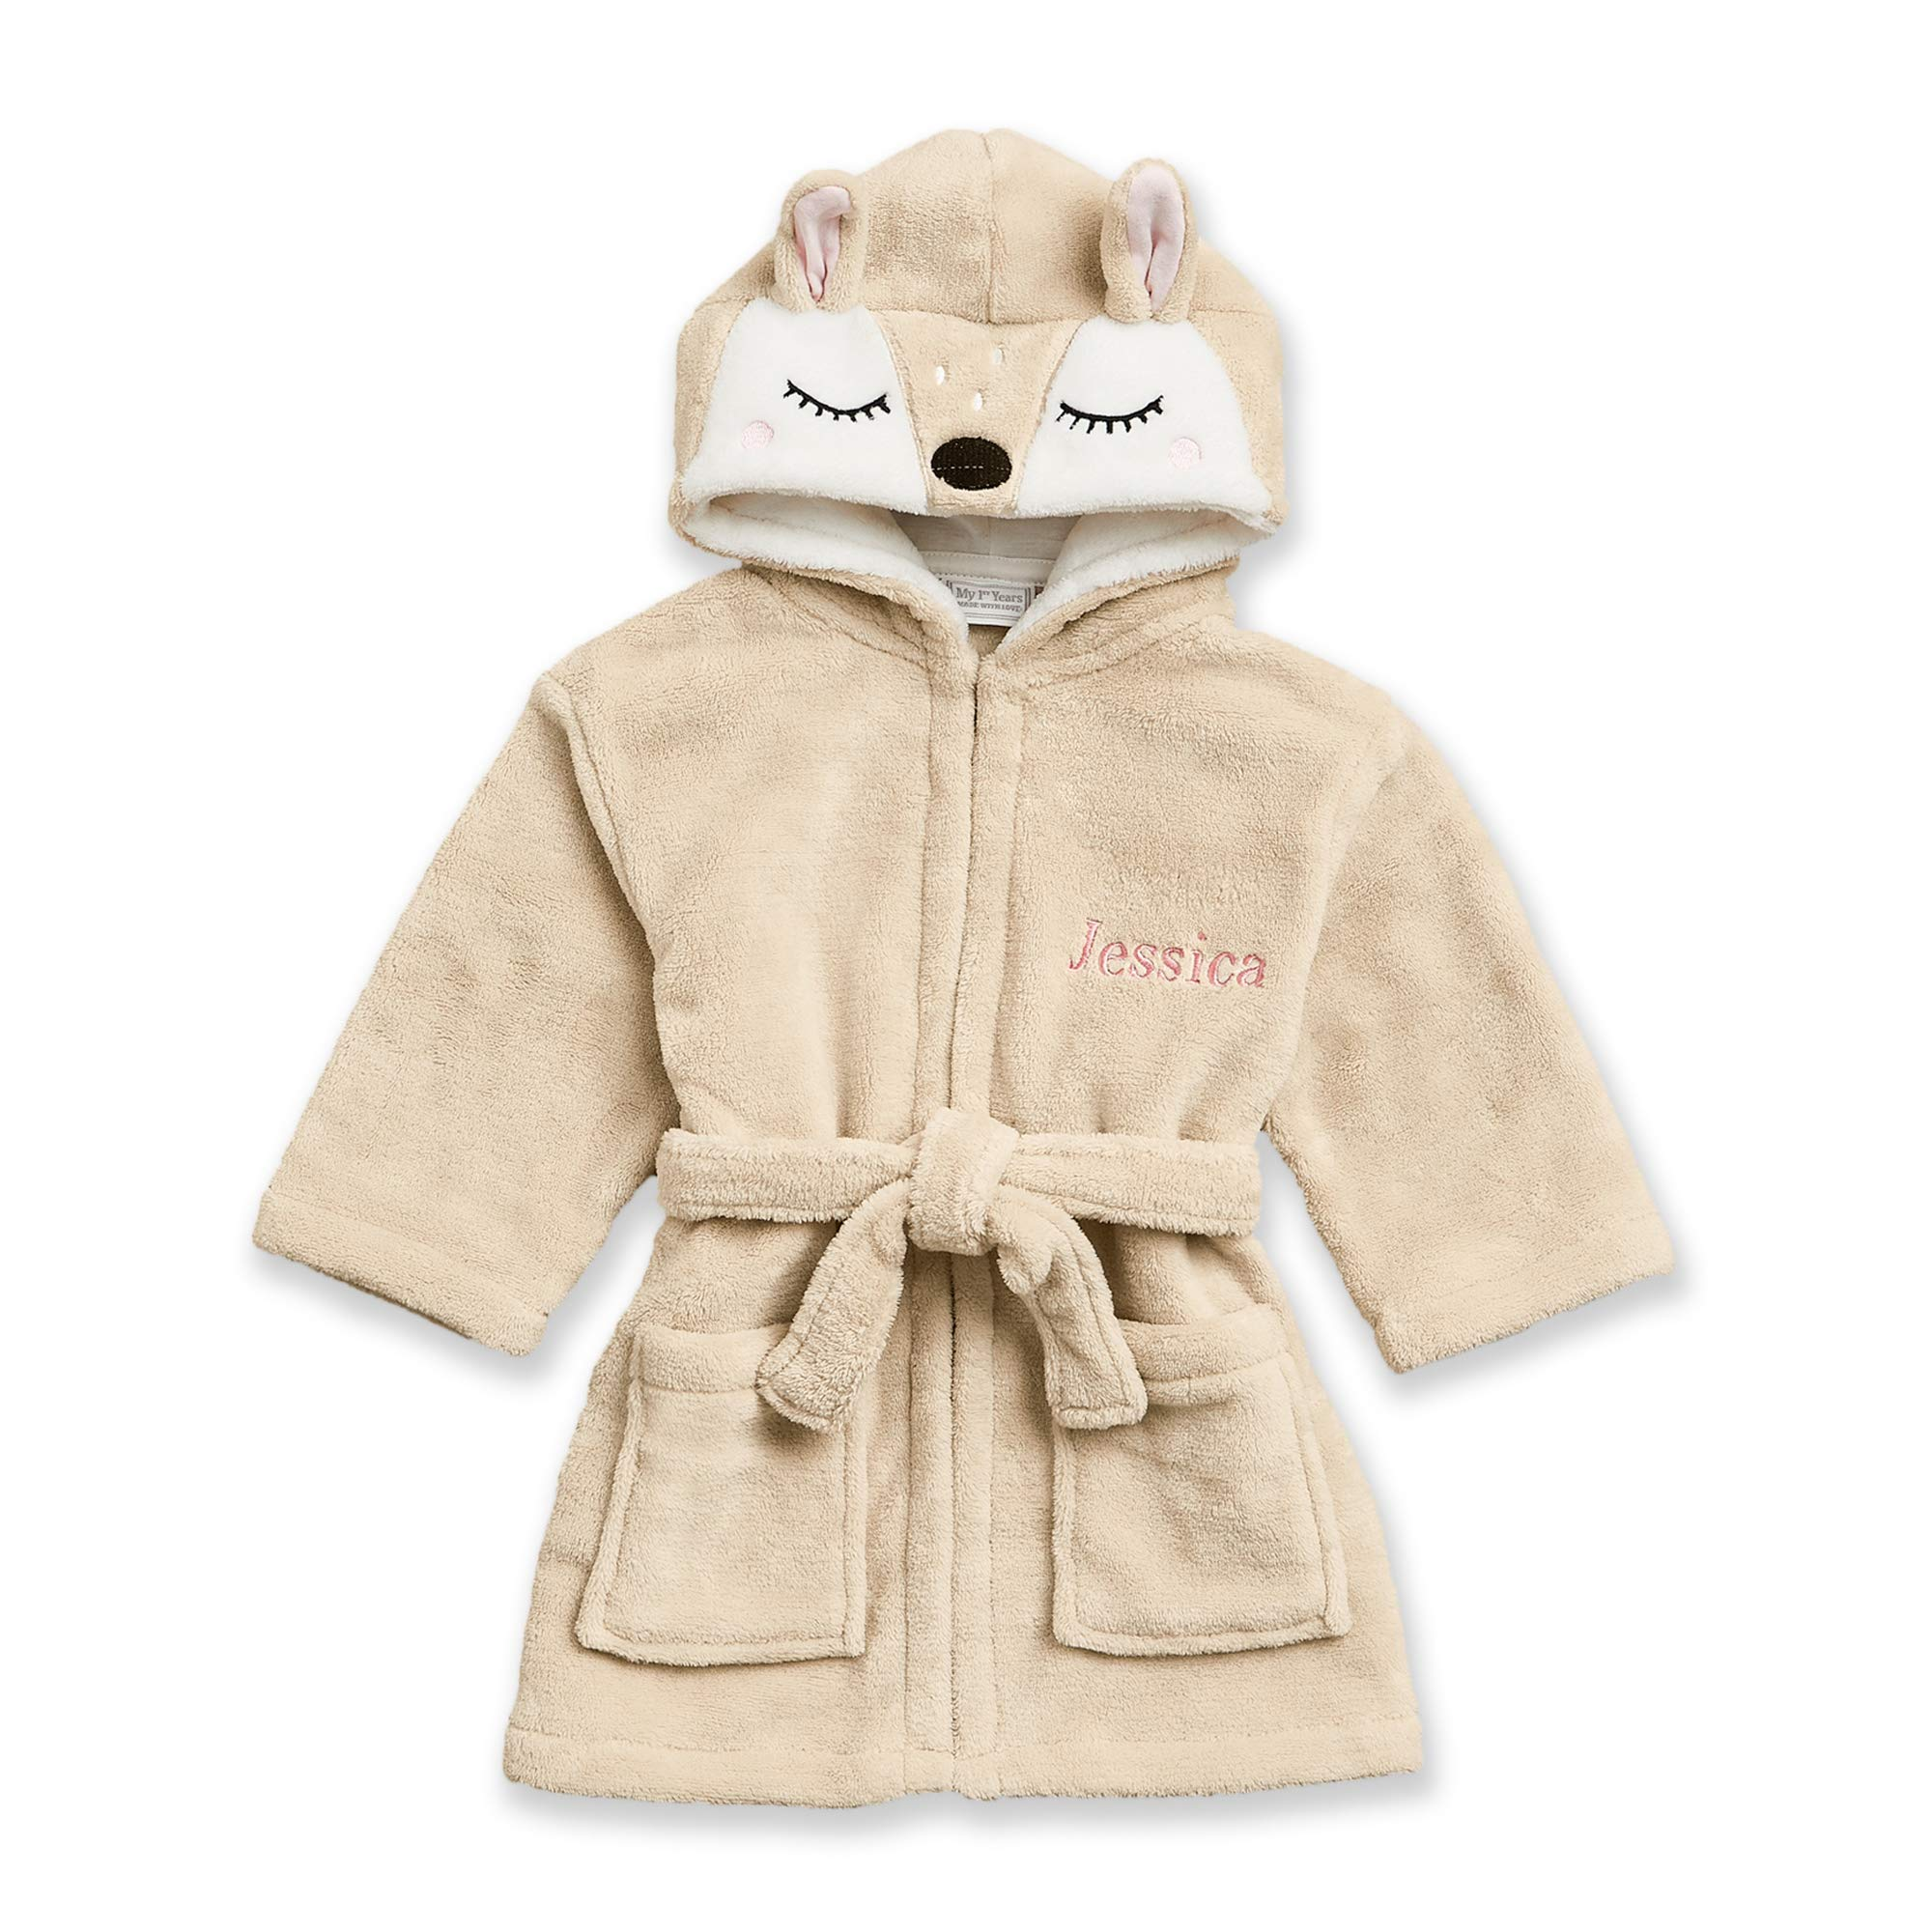 Personalized Bath Robe for Baby & Toddler - Adorable Fawn Soft Hooded Animal Bathrobe for Kids - The Perfect Custom Baby Gift for Boys & Girls - Gift Box Included by MY 1ST YEARS MADE WITH LOVE